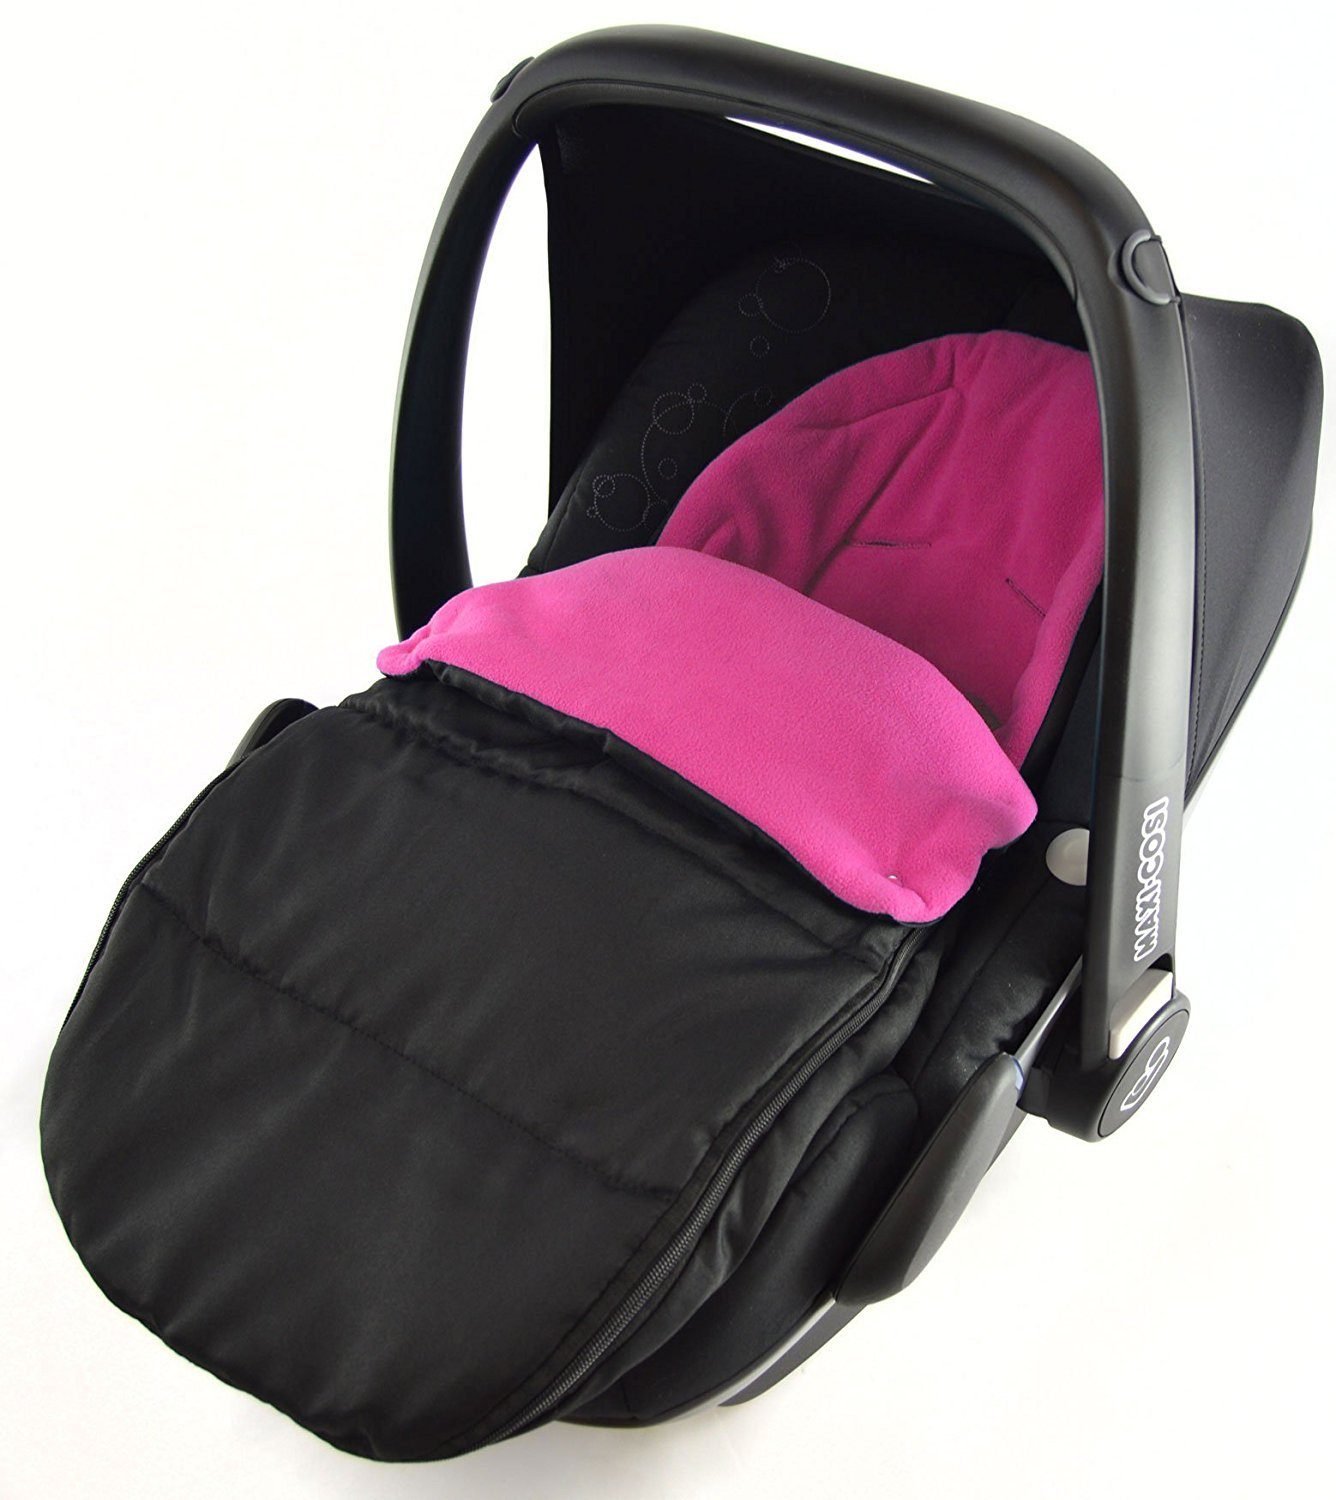 Autositz Fußsack/COSY TOES kompatibel mit Phil & Teds Alpha pink rose For-Your-Little-One